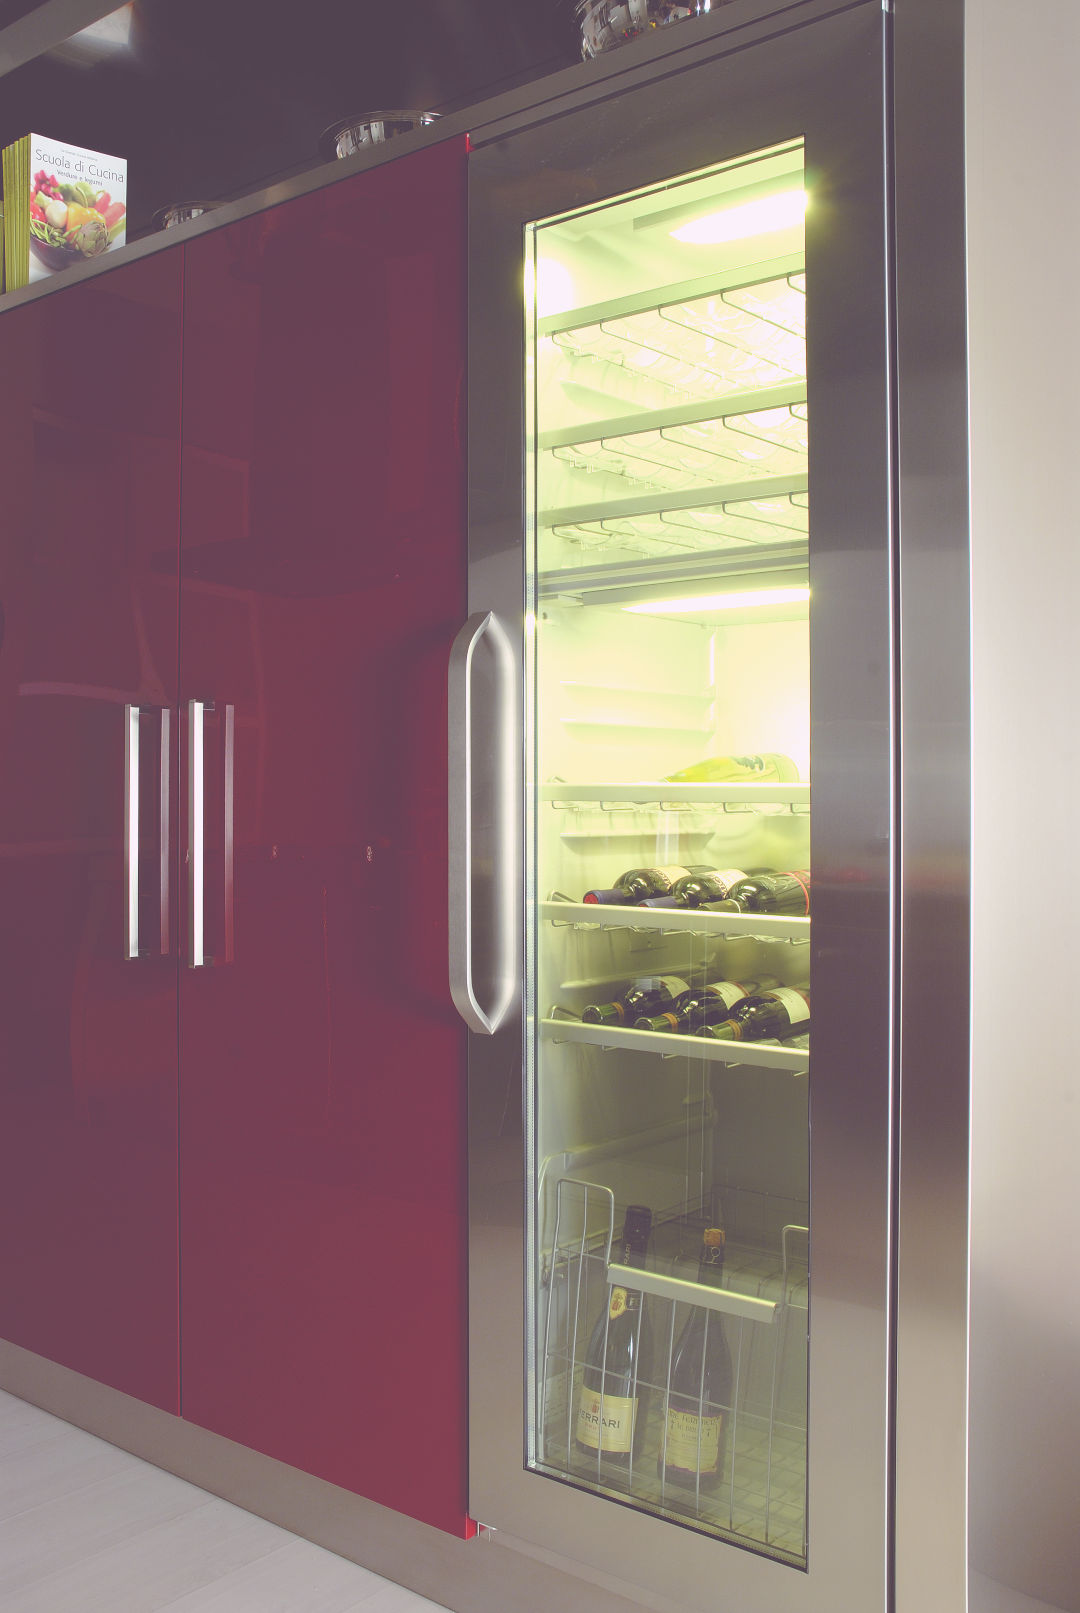 Arca Cucine Italy - Kitchen maid in Stainless Steel and Glass - Opera - Chilled wine cellar